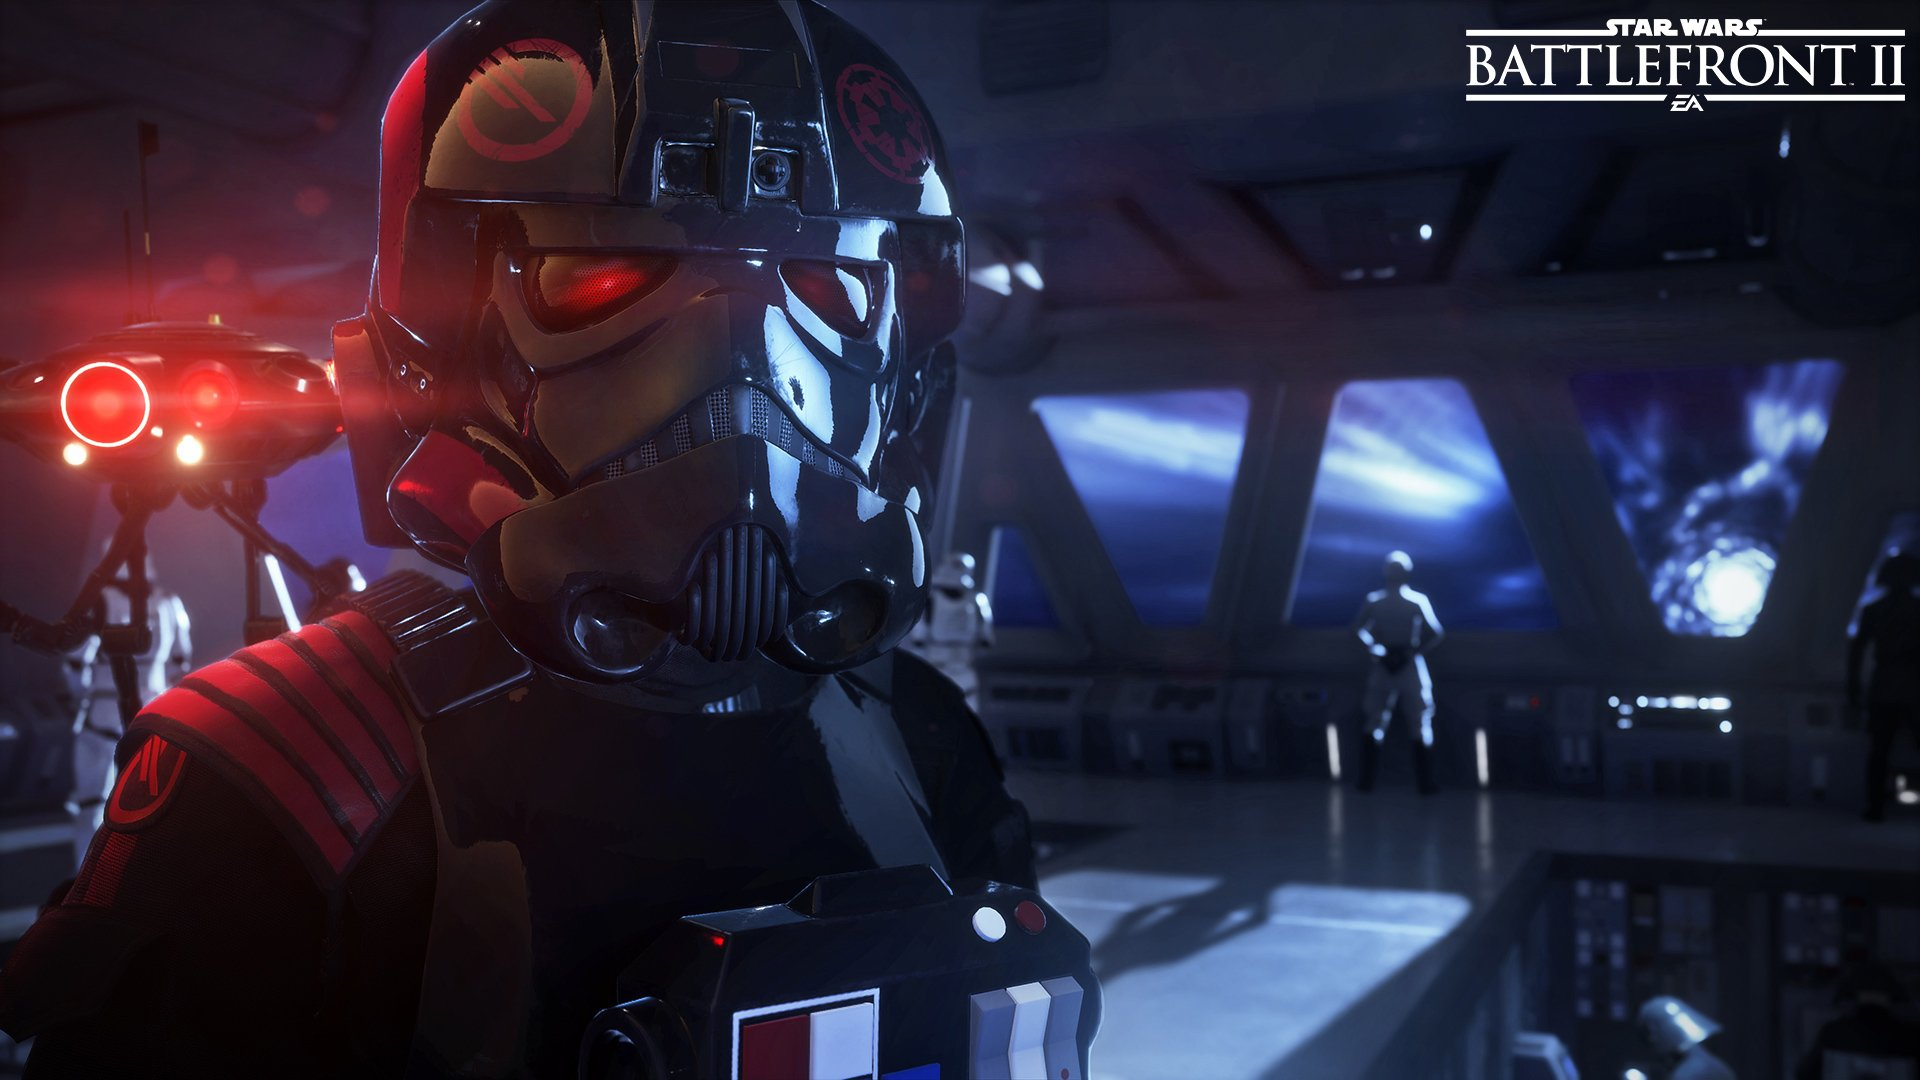 A Better Look At Star Wars Battlefront II's Story